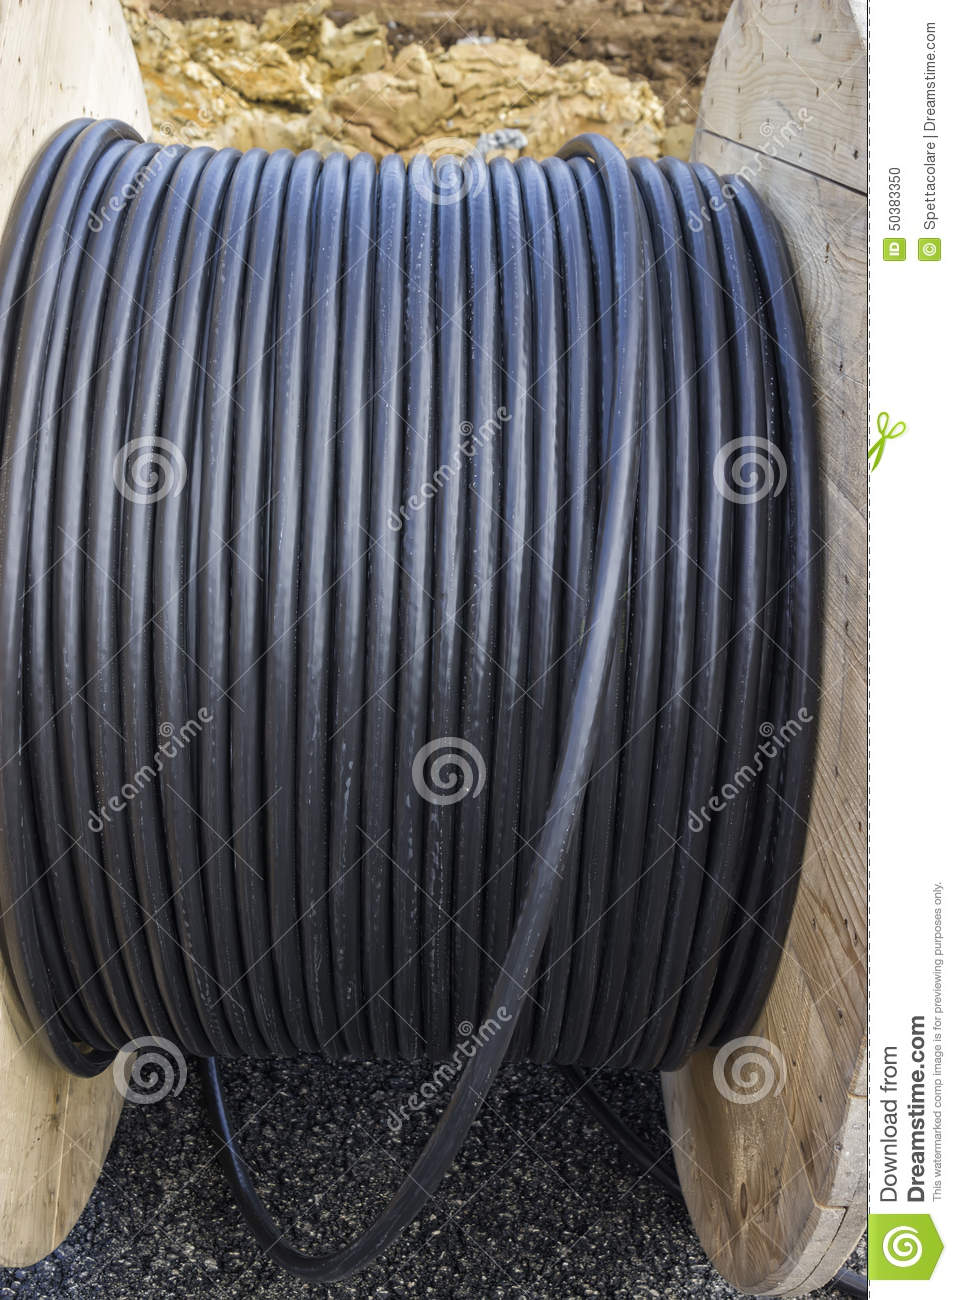 Roll Of Black Industrial Cable On Large Wooden Reel Stock